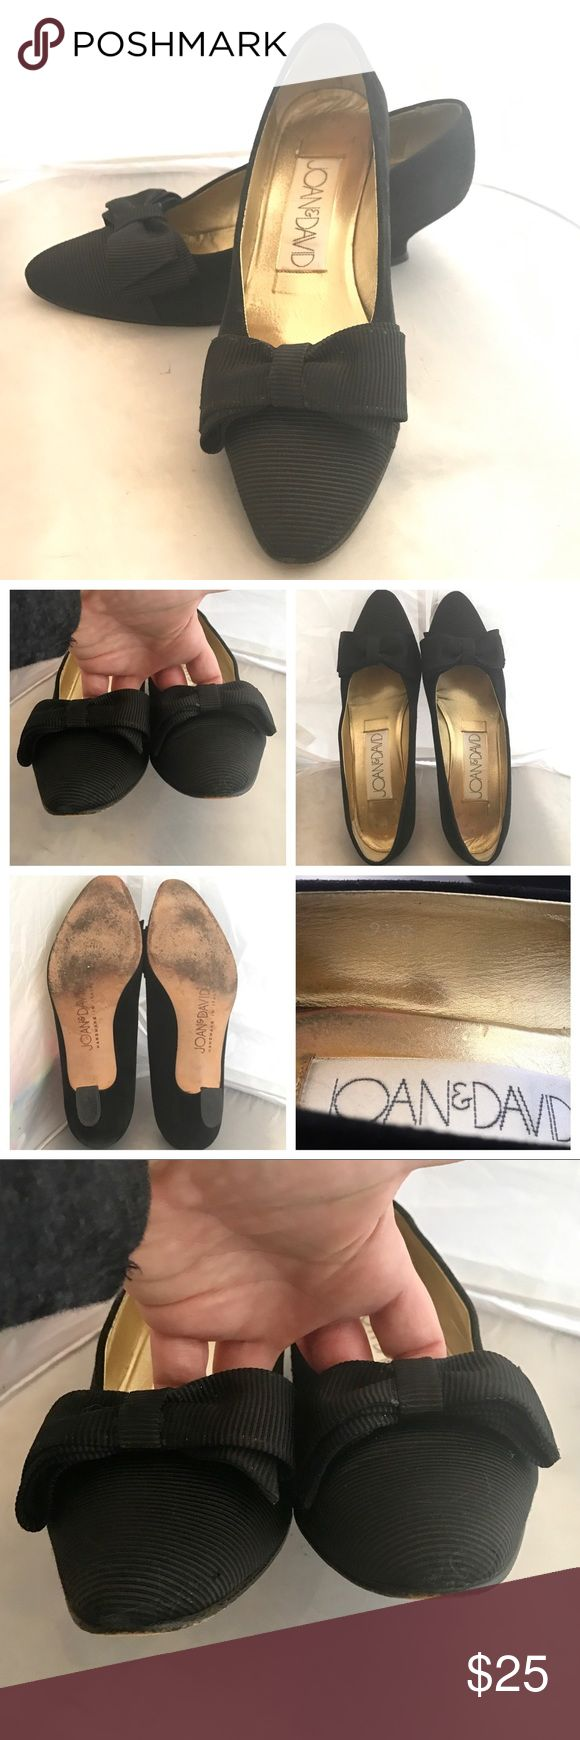 Joan & David Black Silk Bow Shoes Lightly used, in good condition.  Low heel but still good for formal occasions. True to size. Joan & David Shoes Heels